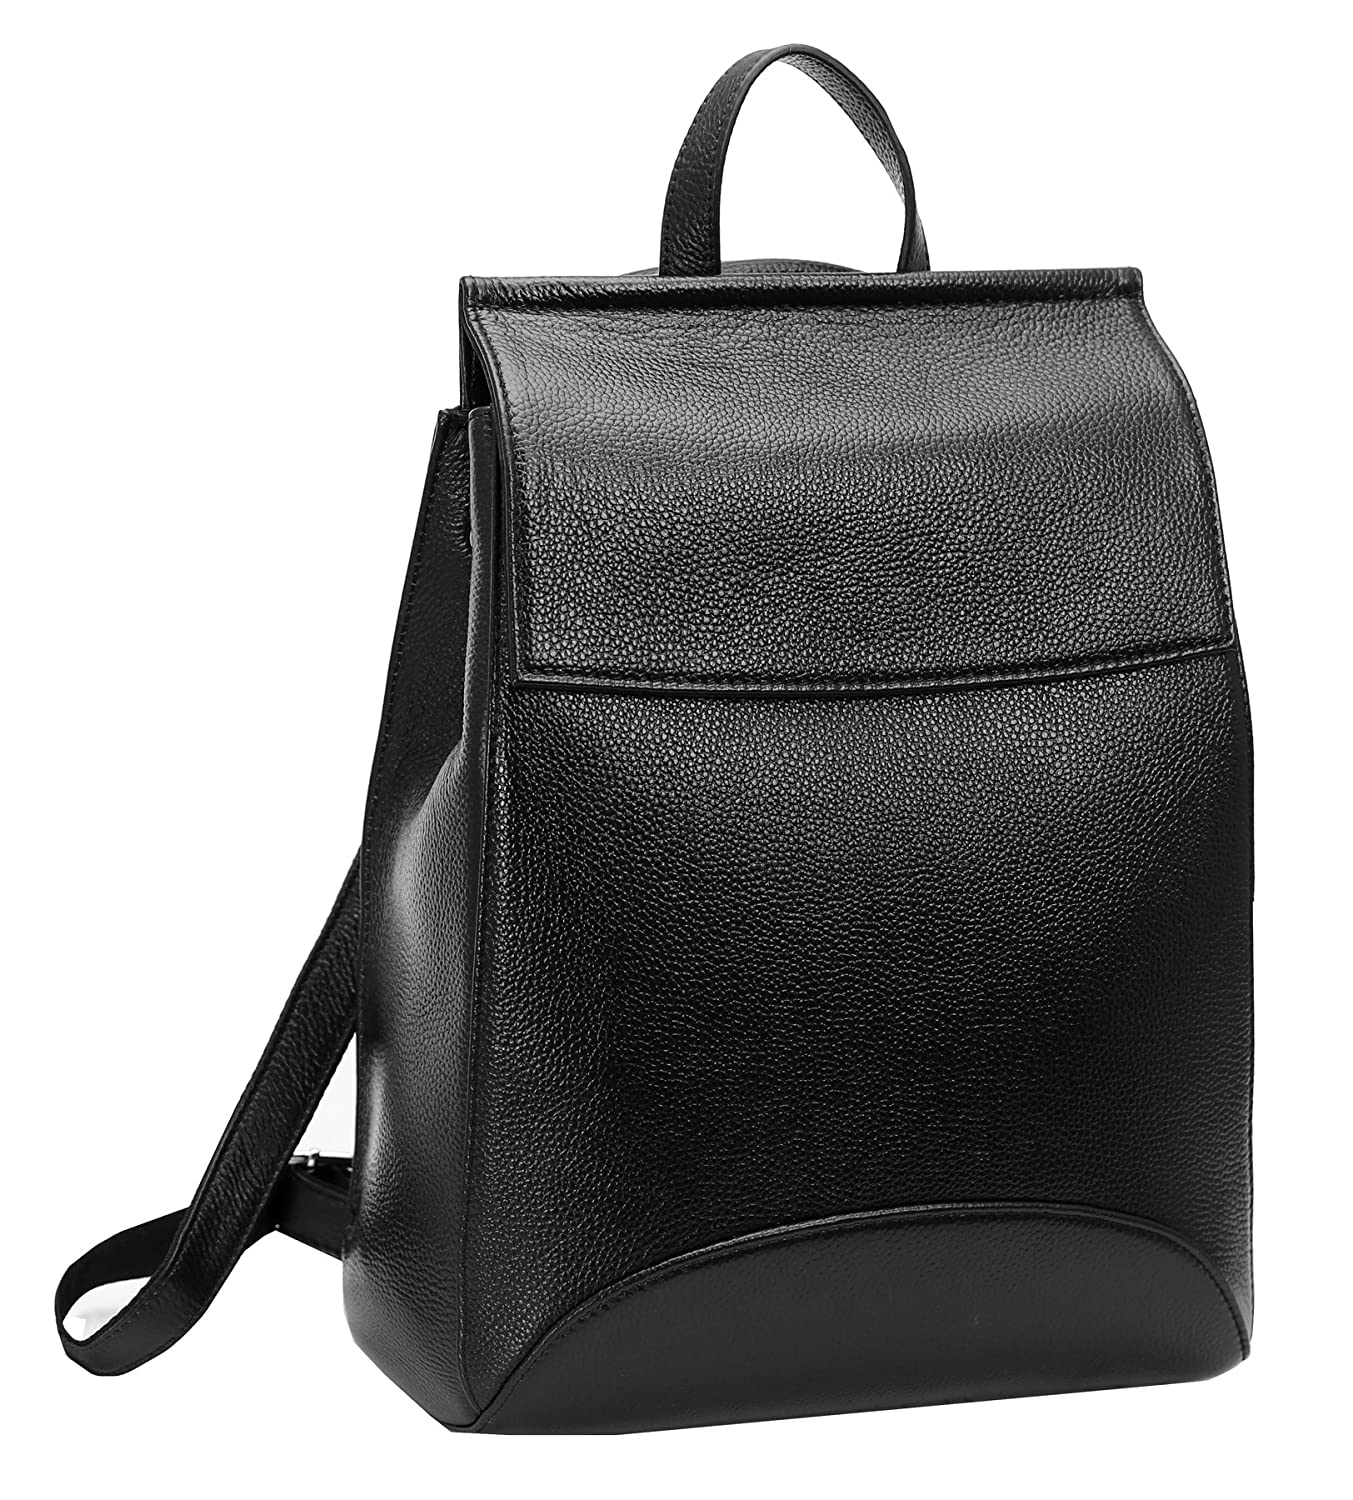 Amazon.com  Heshe Womens Leather Backpack Casual Style Flap Backpacks  Daypack for Ladies (Black-R)  HESHE 8f4337e03c1a4